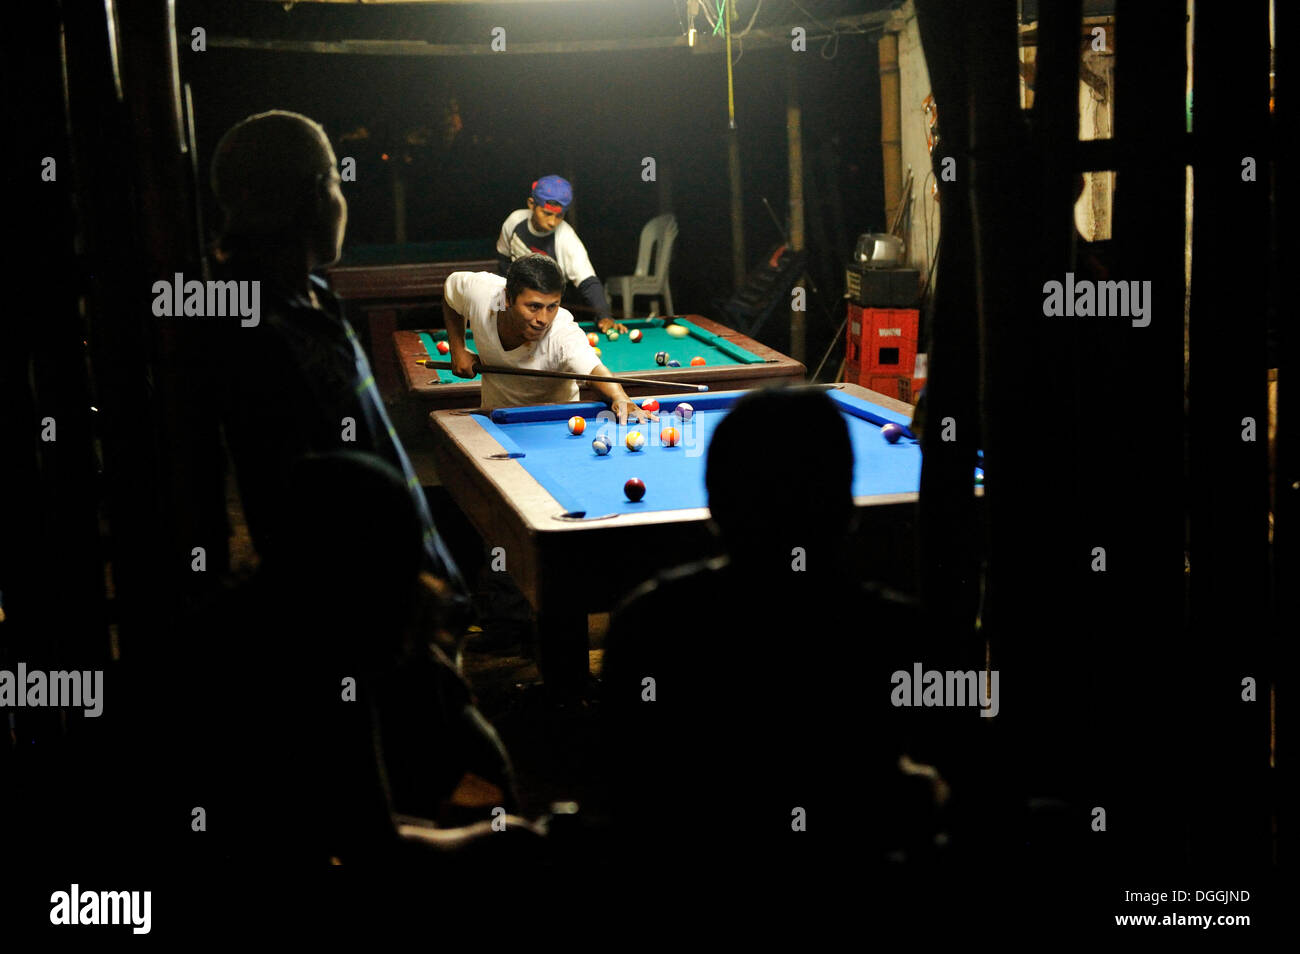 Men playing pool in a bar, Masaya, Nicaragua, Central America - Stock Image